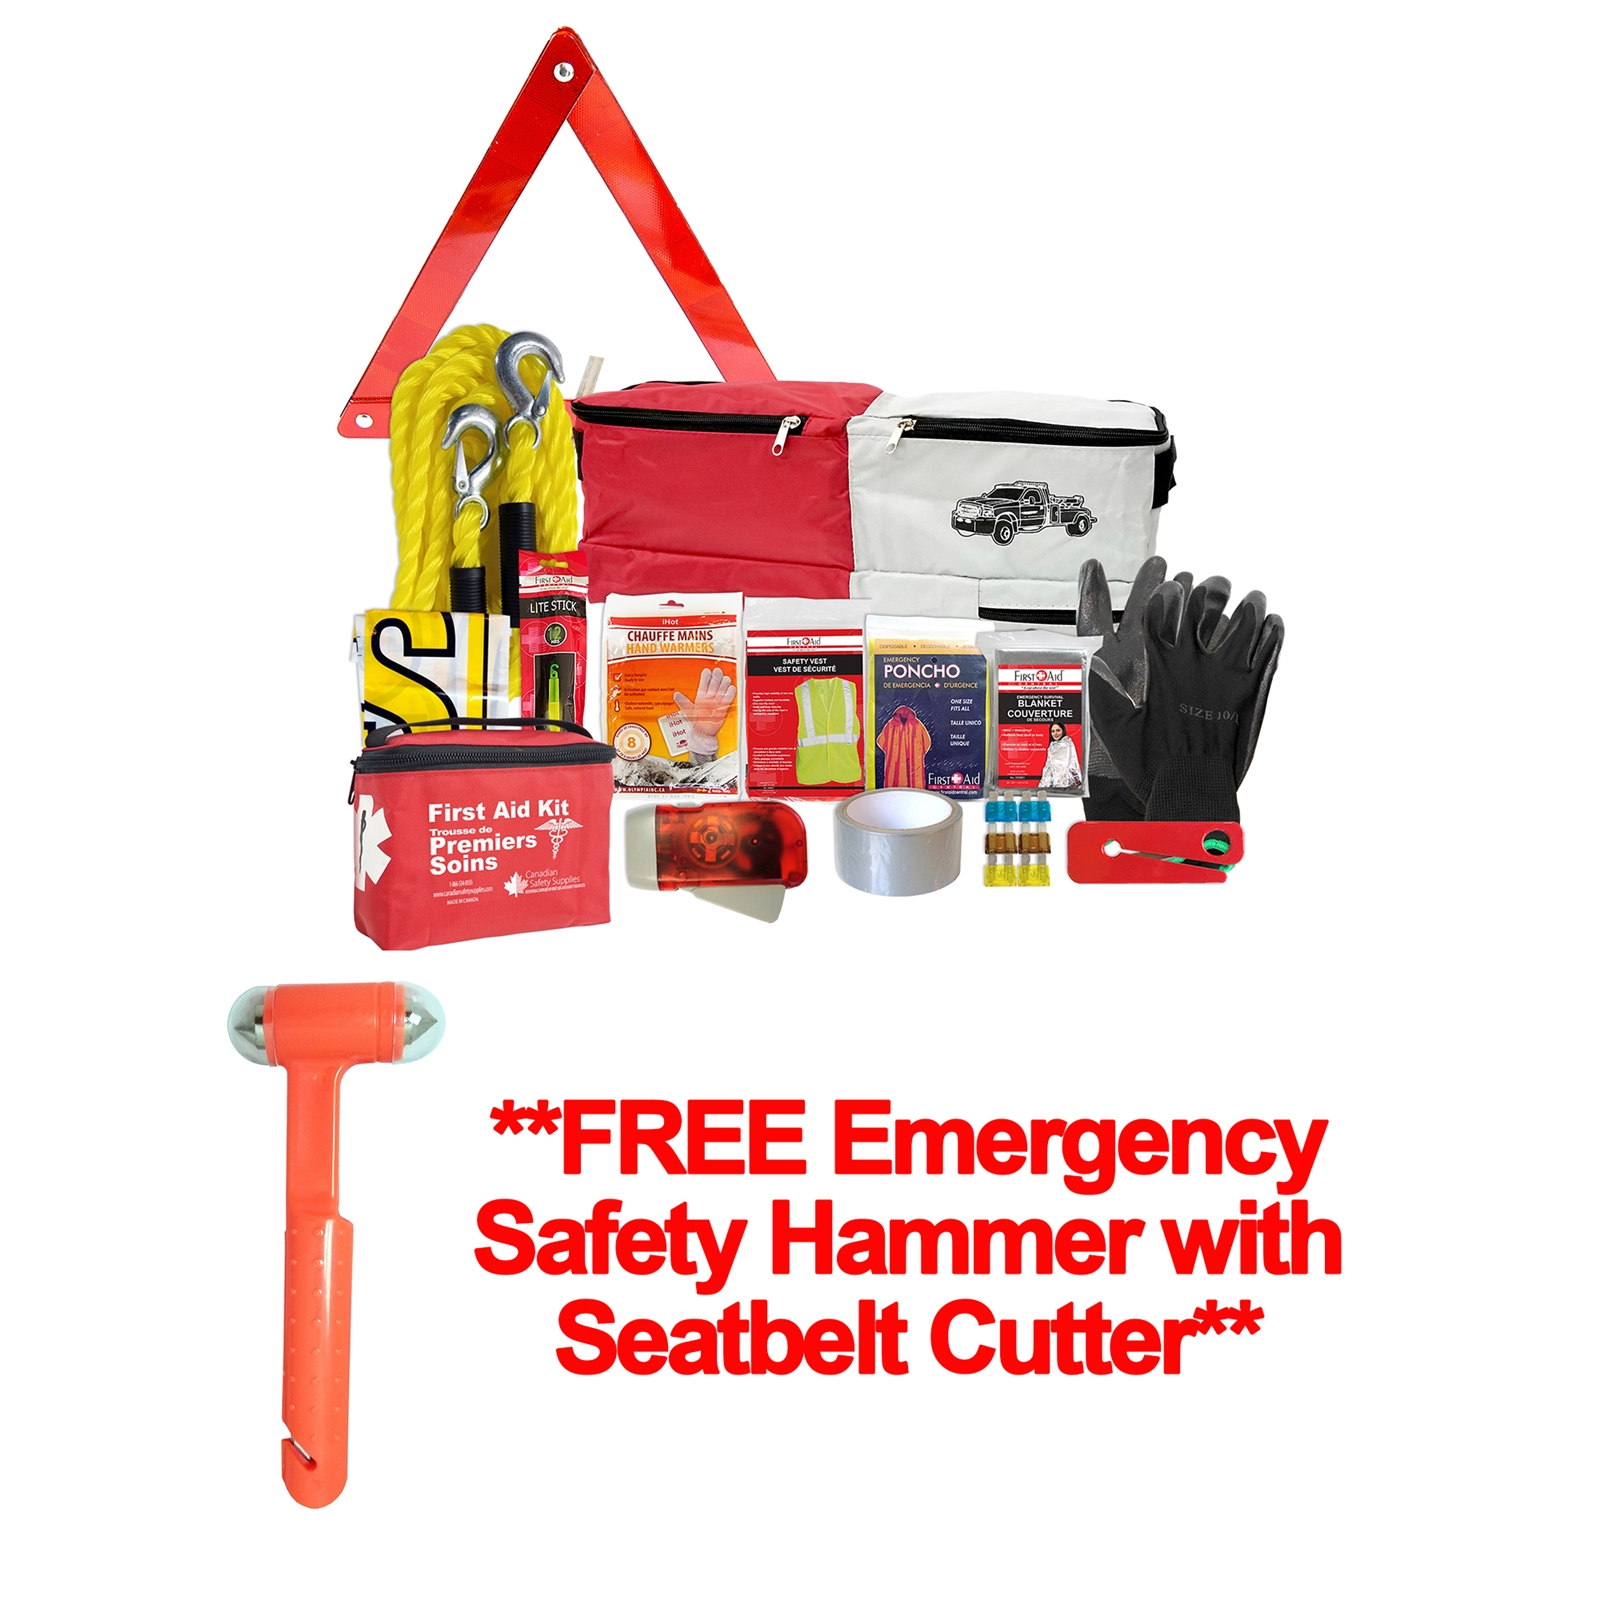 Roadside Assistance Kit - FREE Emergency Safety Hammer with Seatbelt Cutter